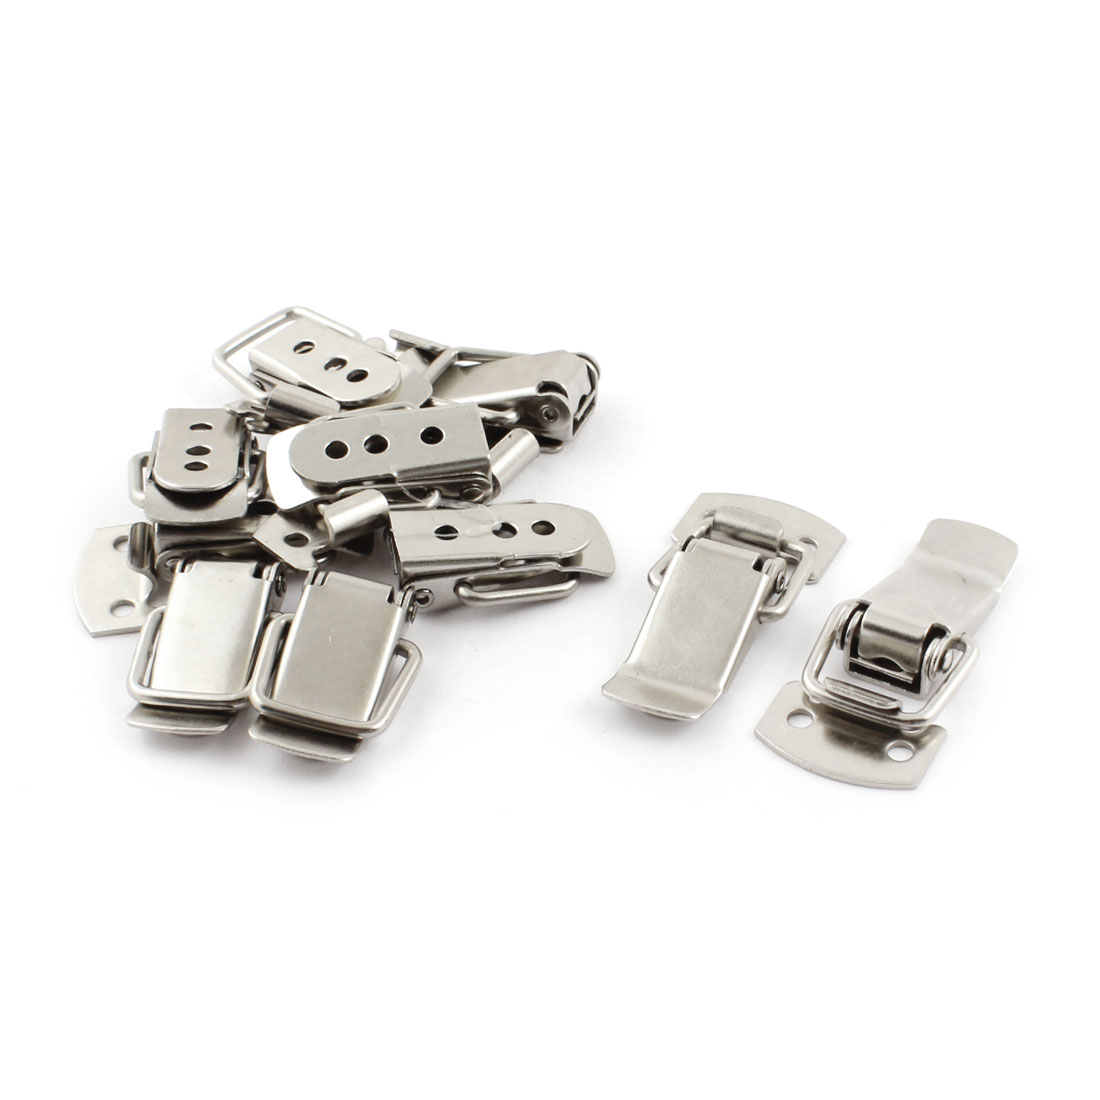 10pcs Home Cabinet Case Boxes Security Alloy Toggle Latch Catch 1.2""